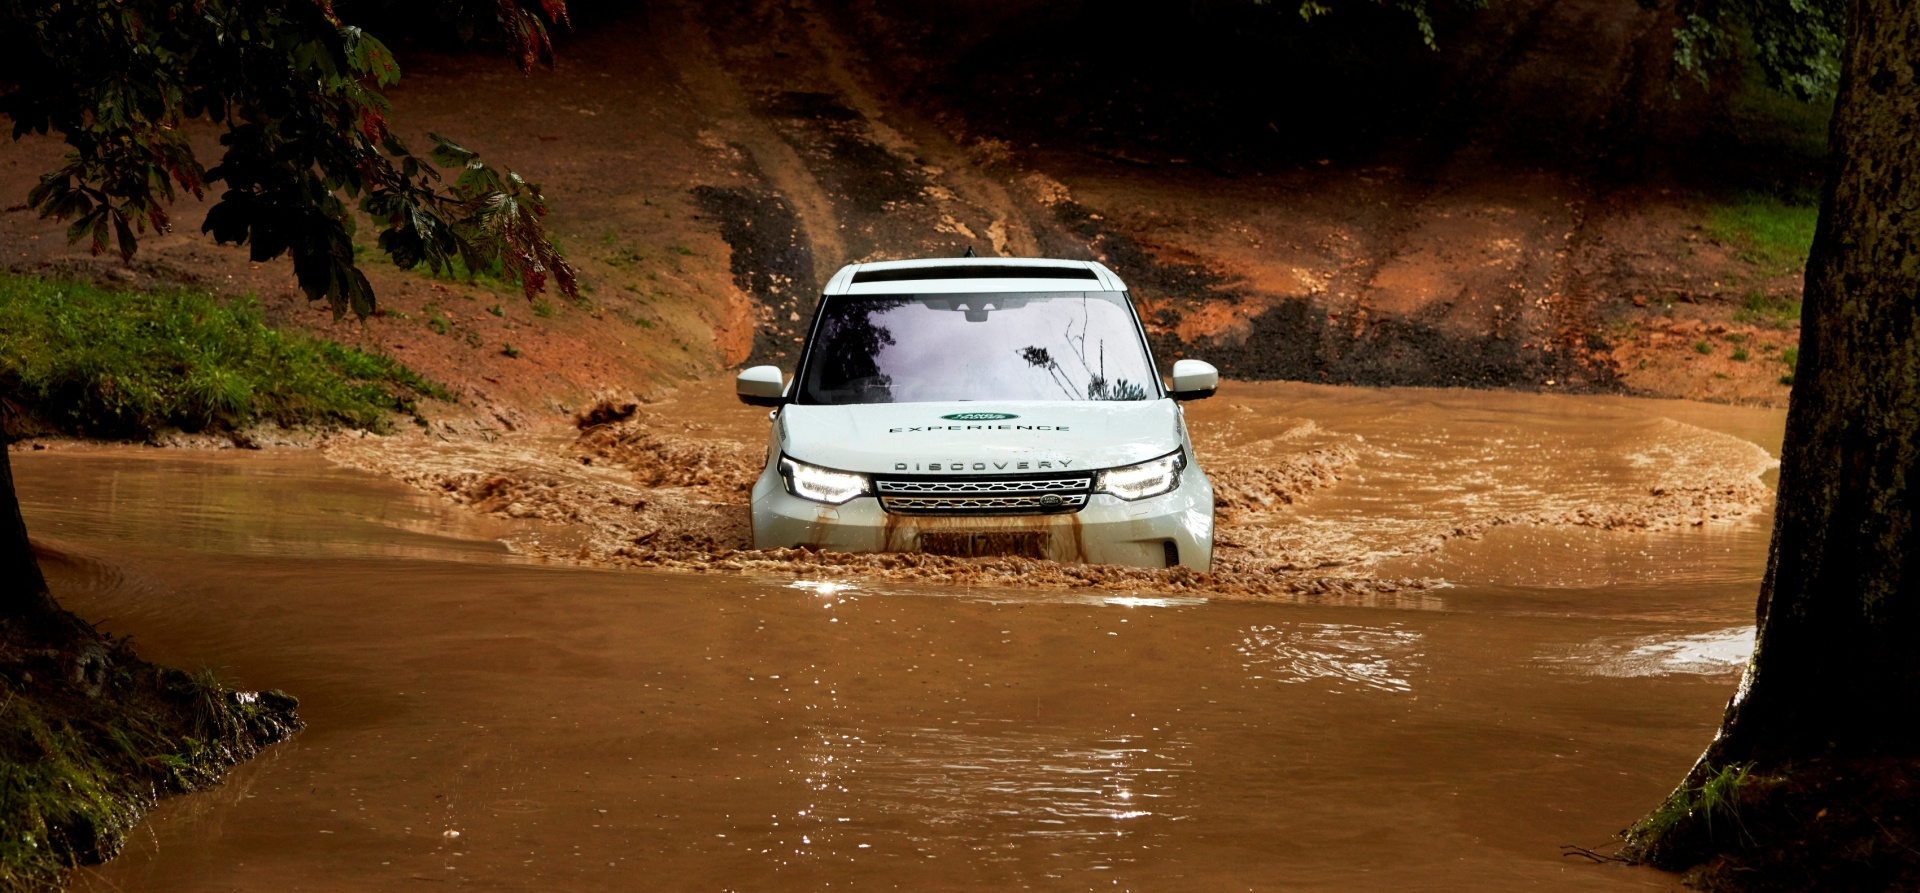 Full Day Land Rover Experience (Private)-7